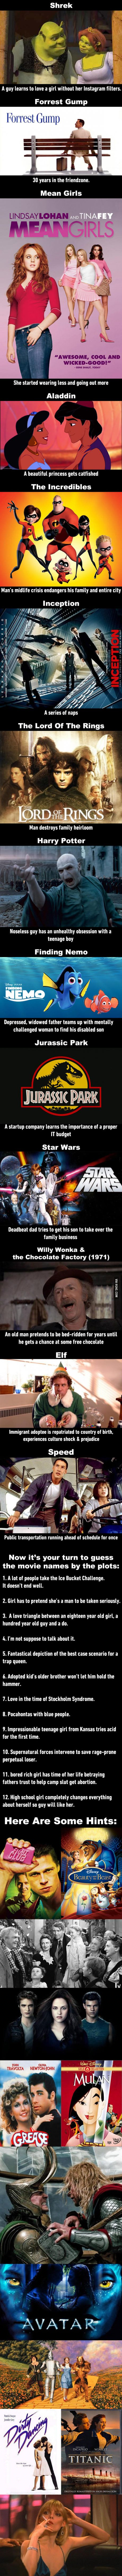 26 Movie Plots Explained Badly, But Better